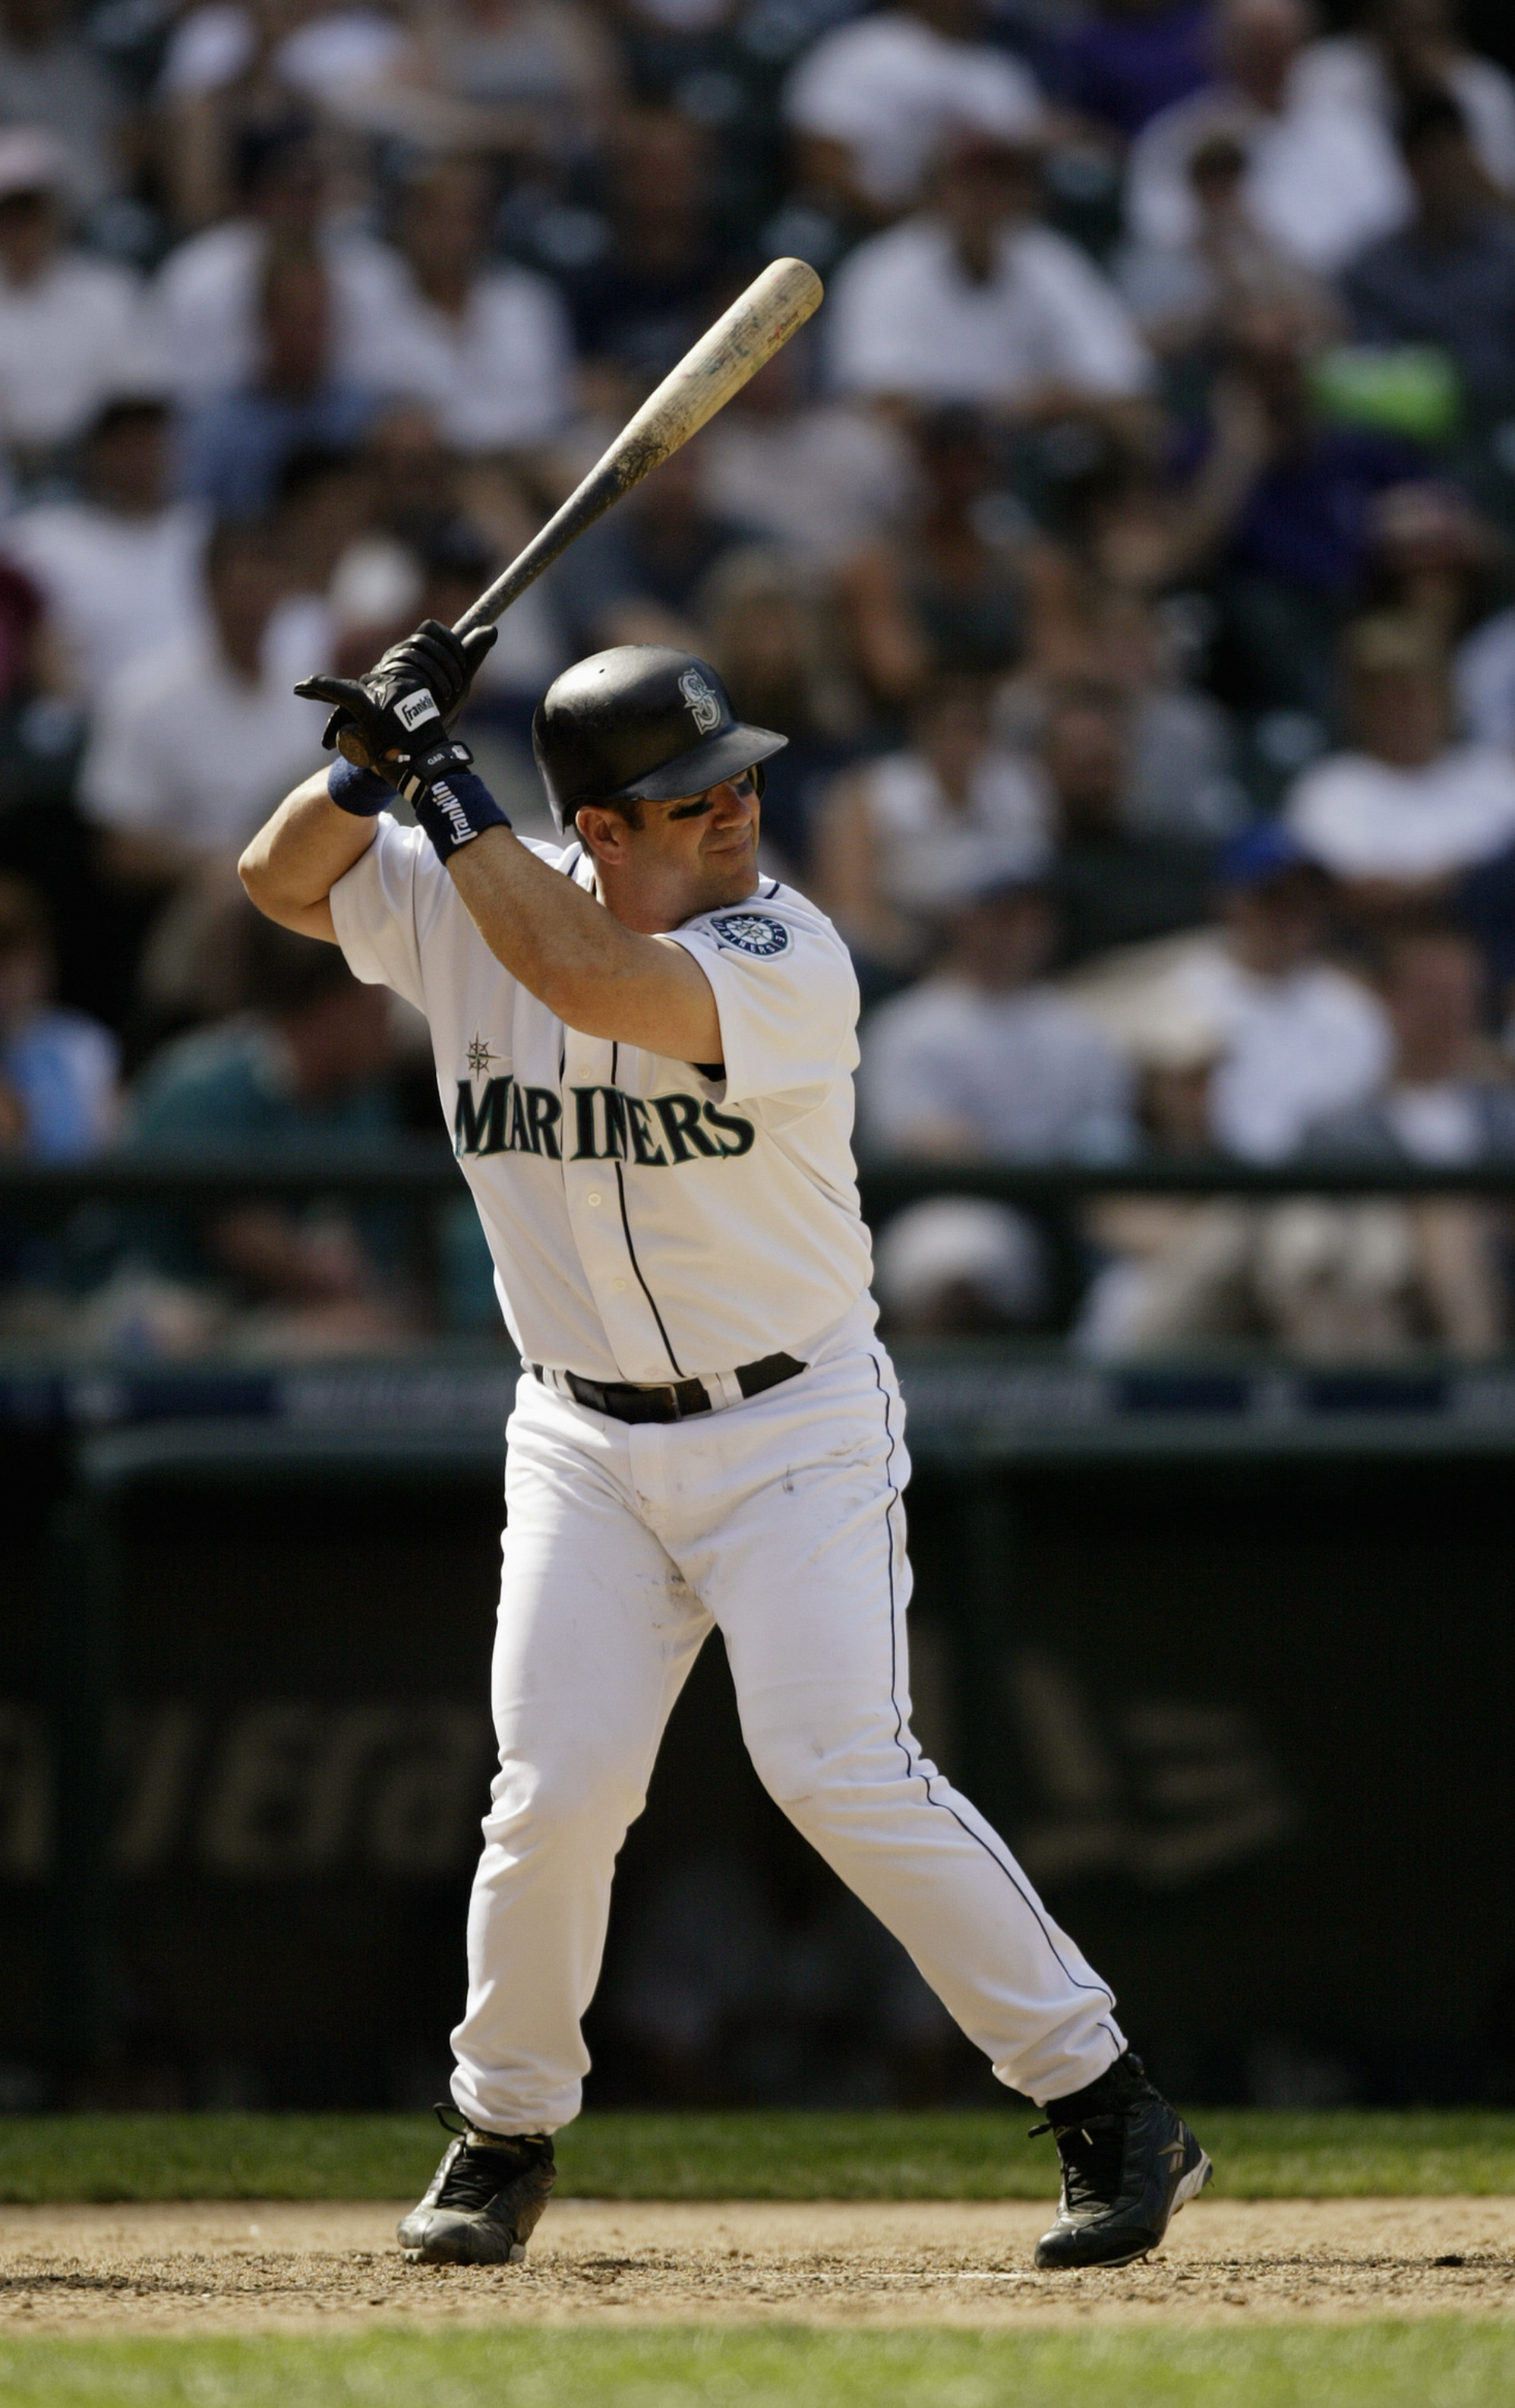 SEATTLE - JULY 20:  Edgar Martinez #11 of the Seattle Mariners bats during the game against the Boston Red Sox on July 20, 2004 at Safeco Field in Seattle, Washington.  The Red Sox defeated the Mariners 9-7.  (Photo by Otto Greule Jr/Getty Images)